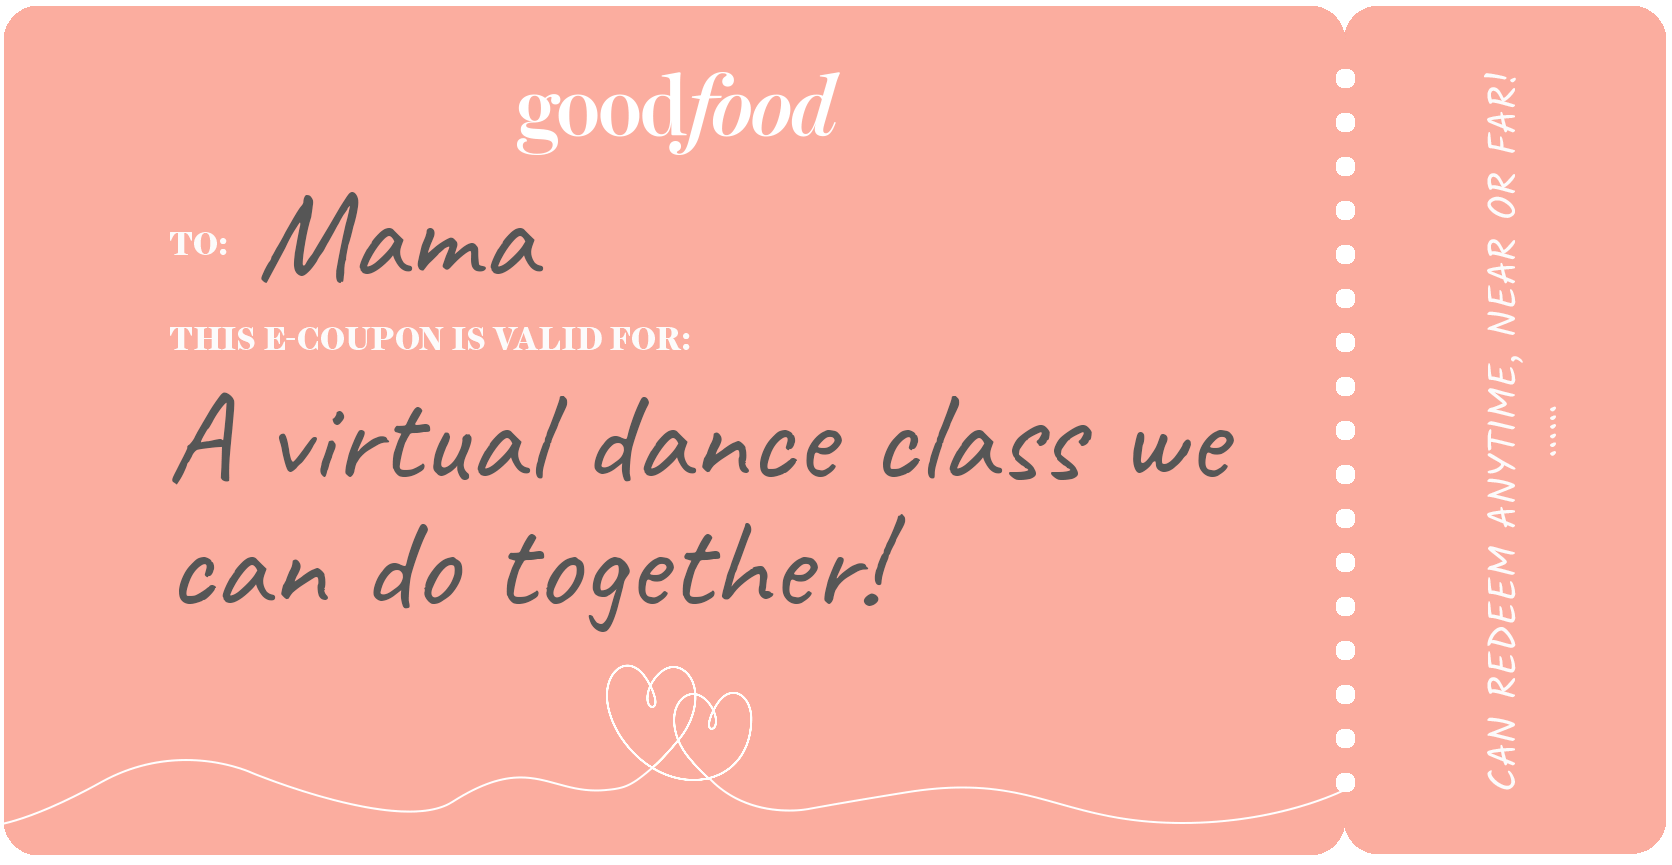 Coupon example, dance class